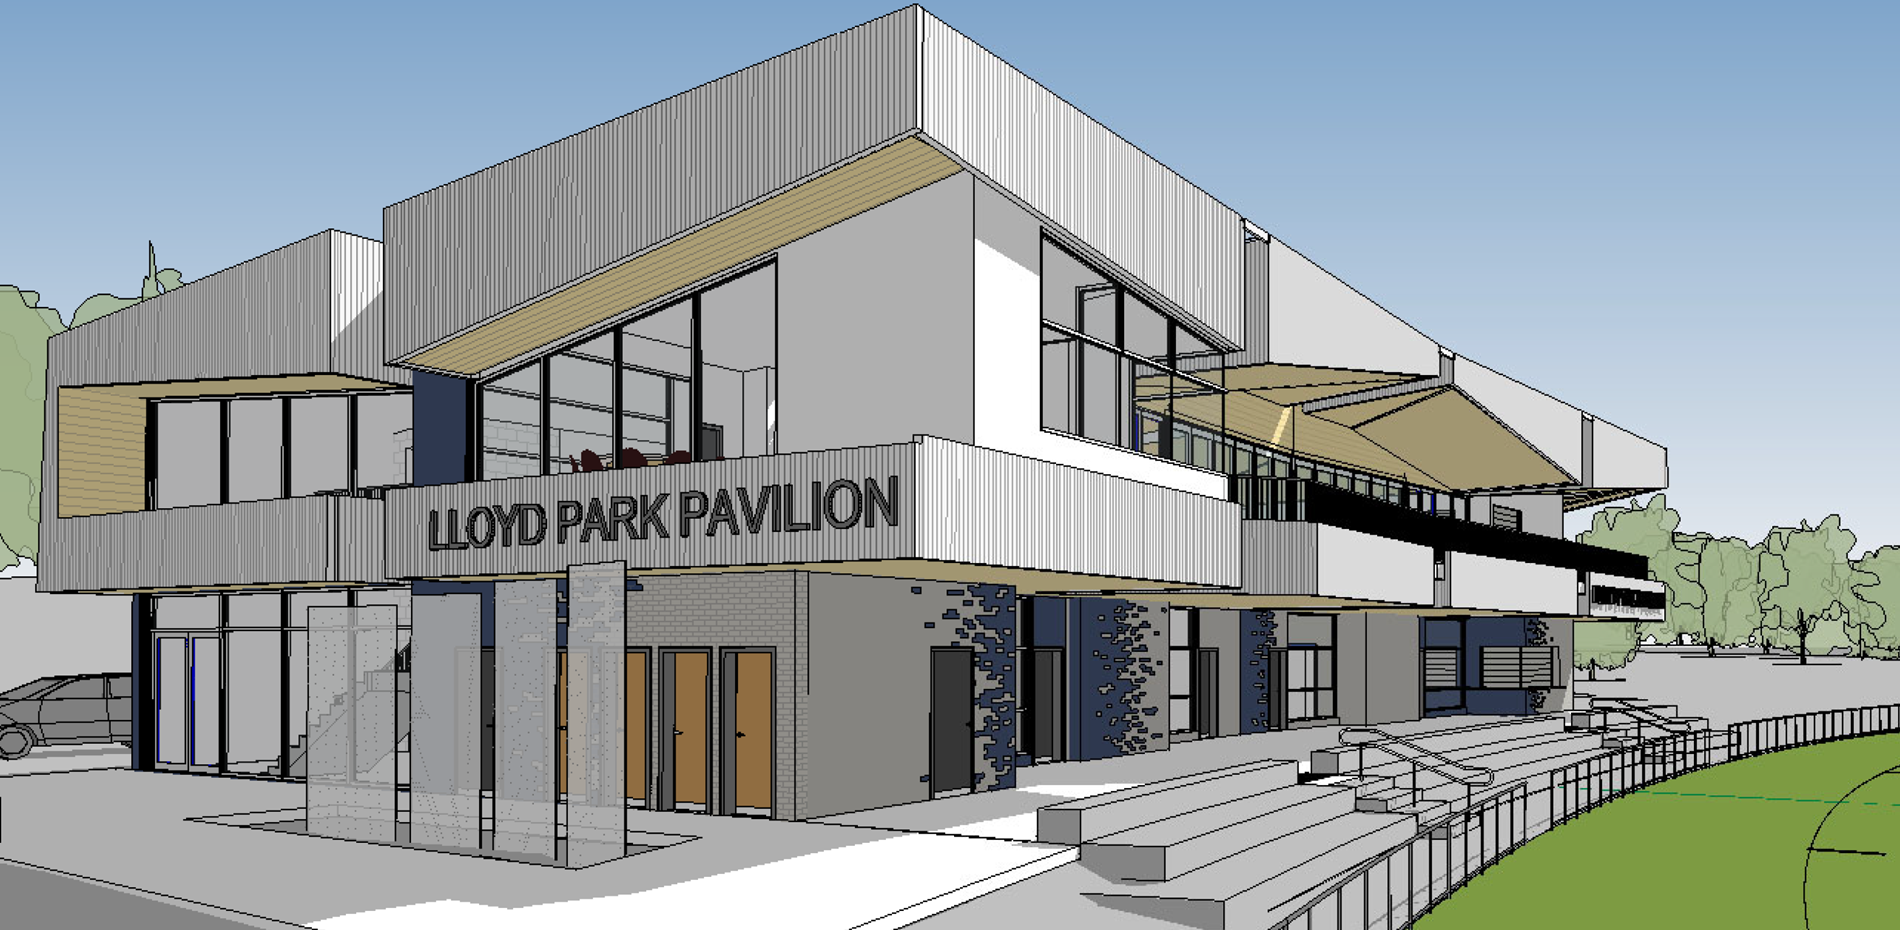 MEDIA RELEASE - FIRST GLIMPSE OF NEW LOOK LLOYD PARK PAVILION - 11 AUGUST 2020 Main Image